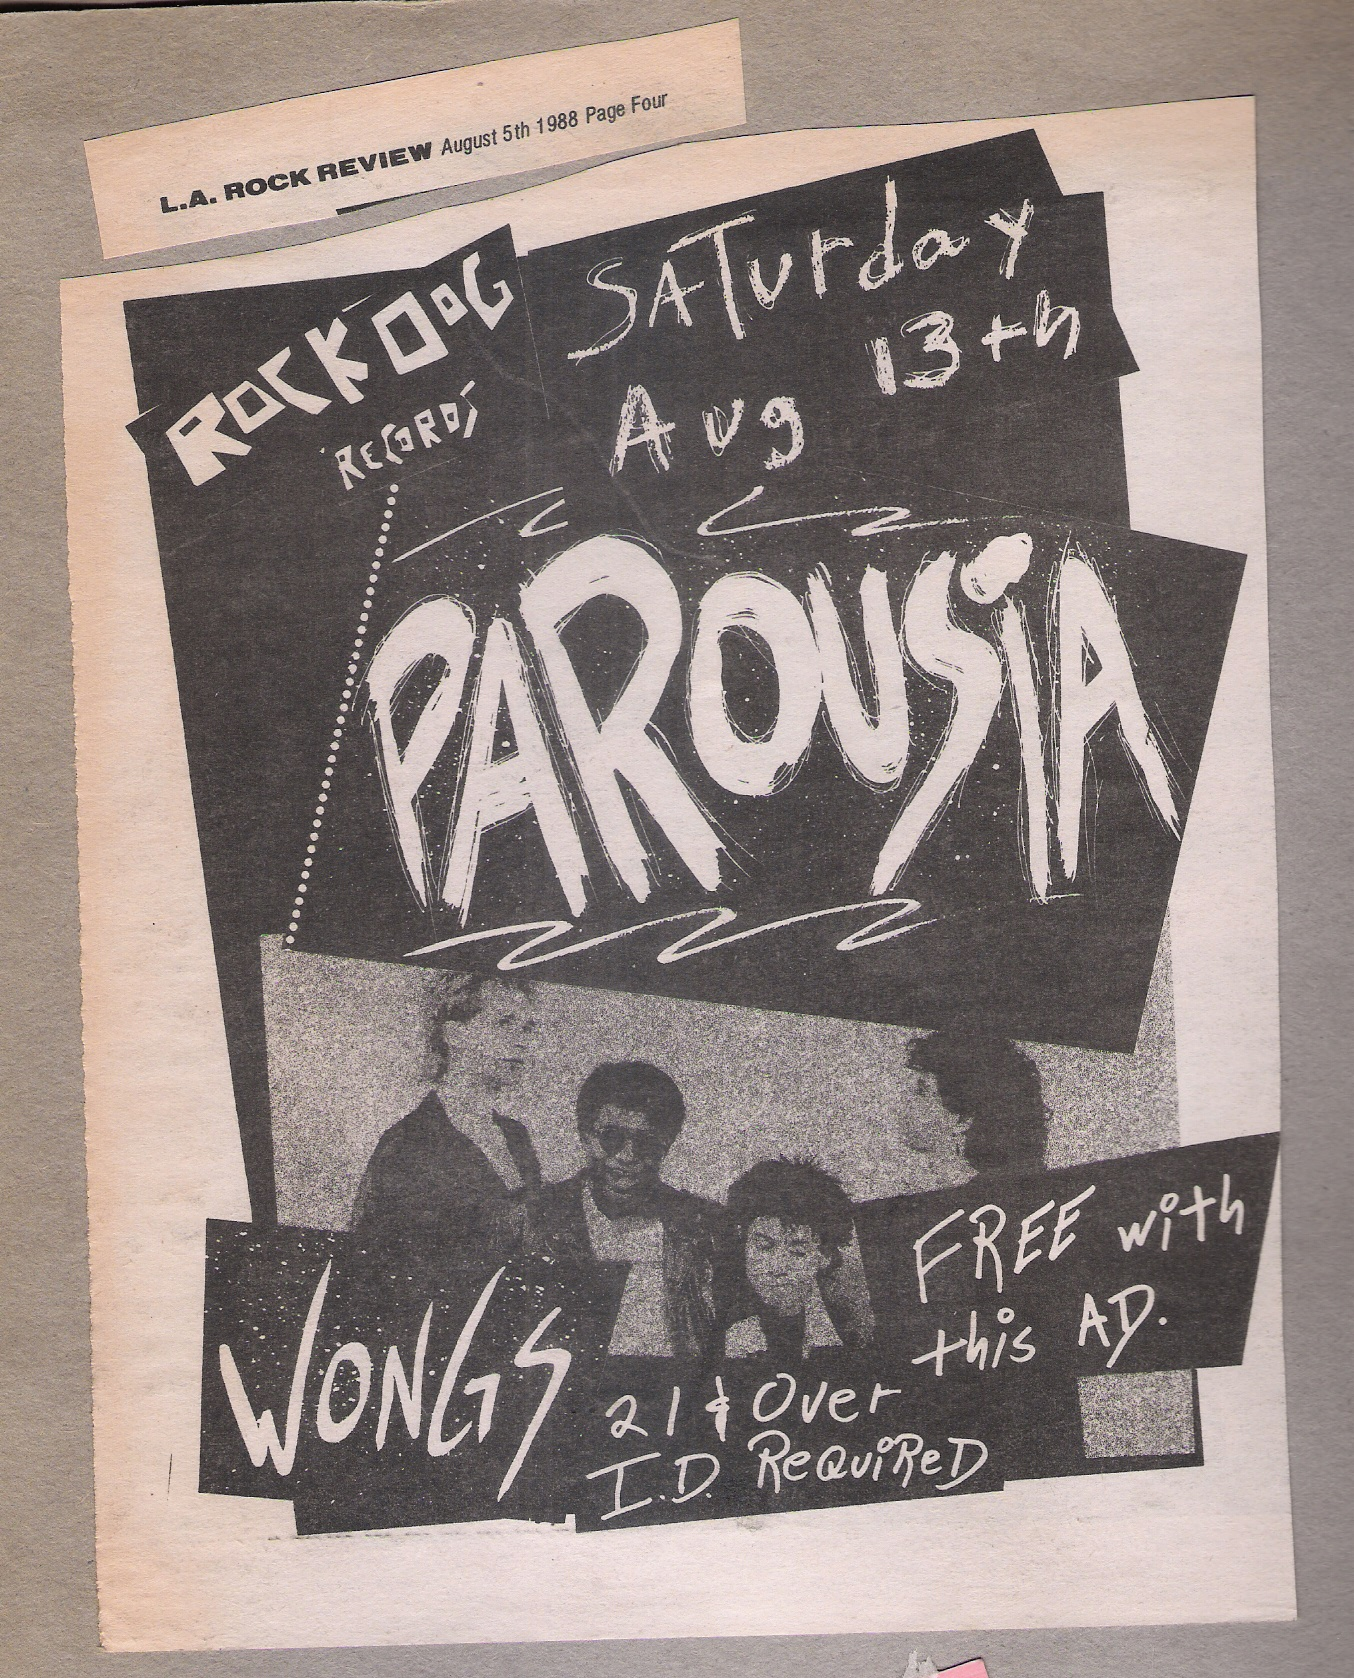 Promo for the Madame Wong's show published in the L.A. Rock Review Aug. 05, 1988